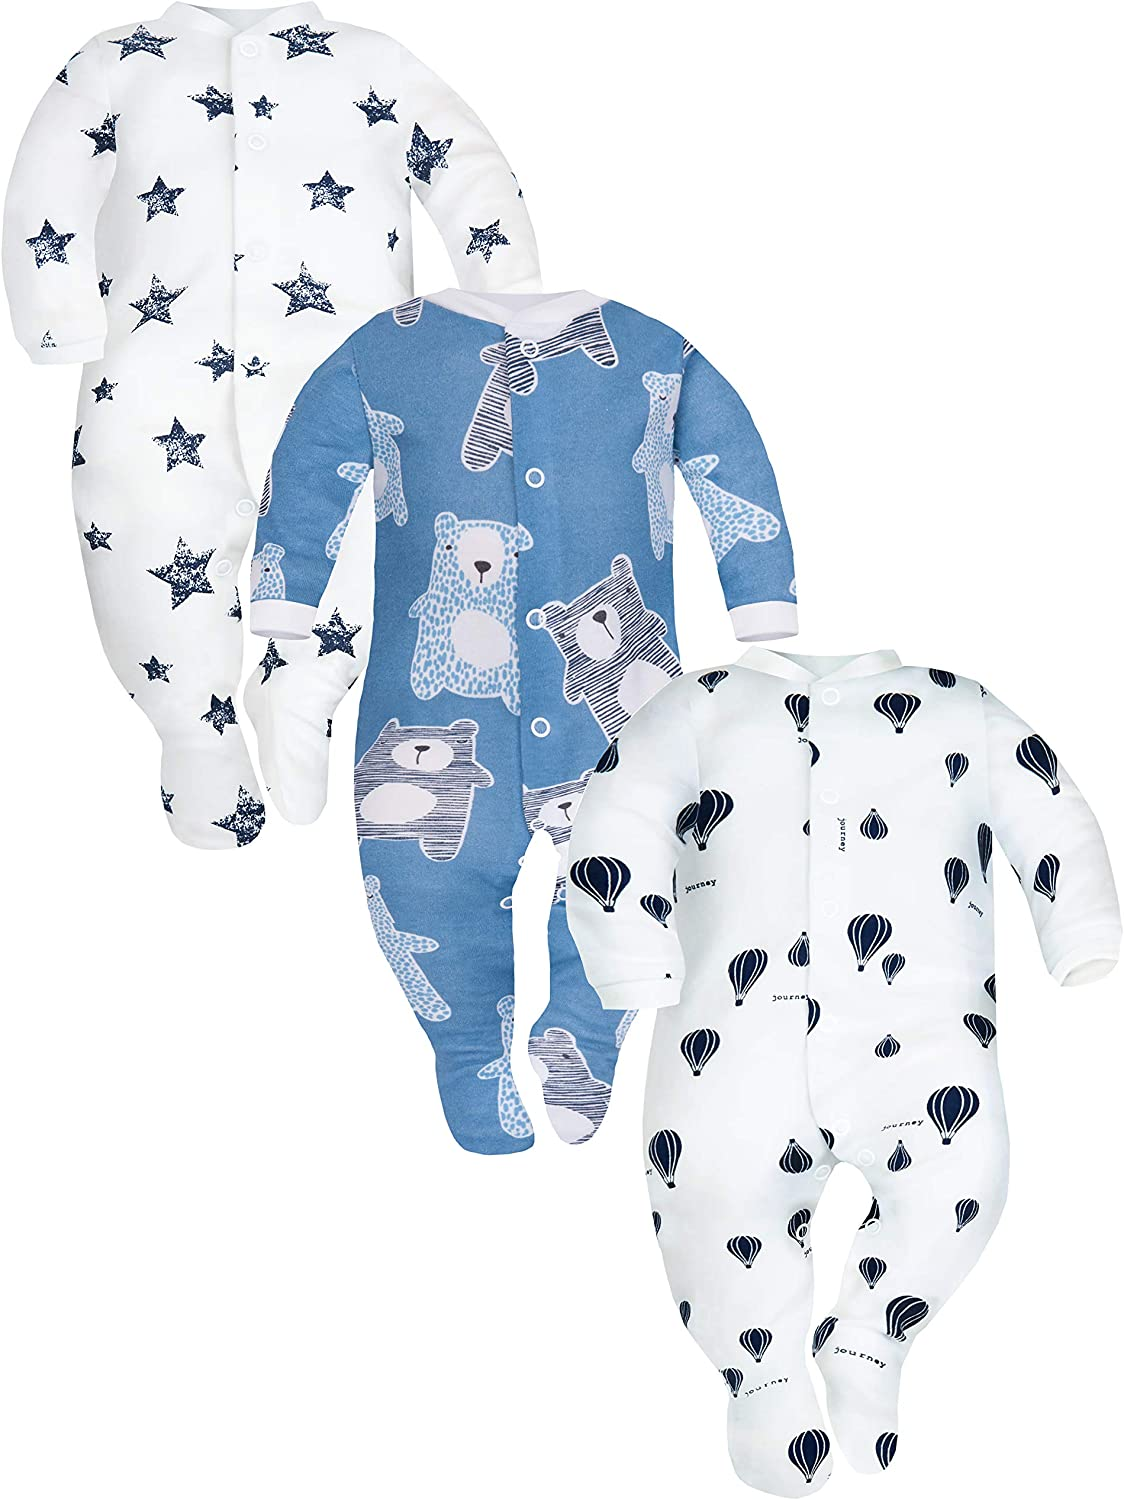 Pack of 3 SIBINULO Baby Boys Baby Girls Sleepsuit with Feet Mix Sizes 0-9 Months